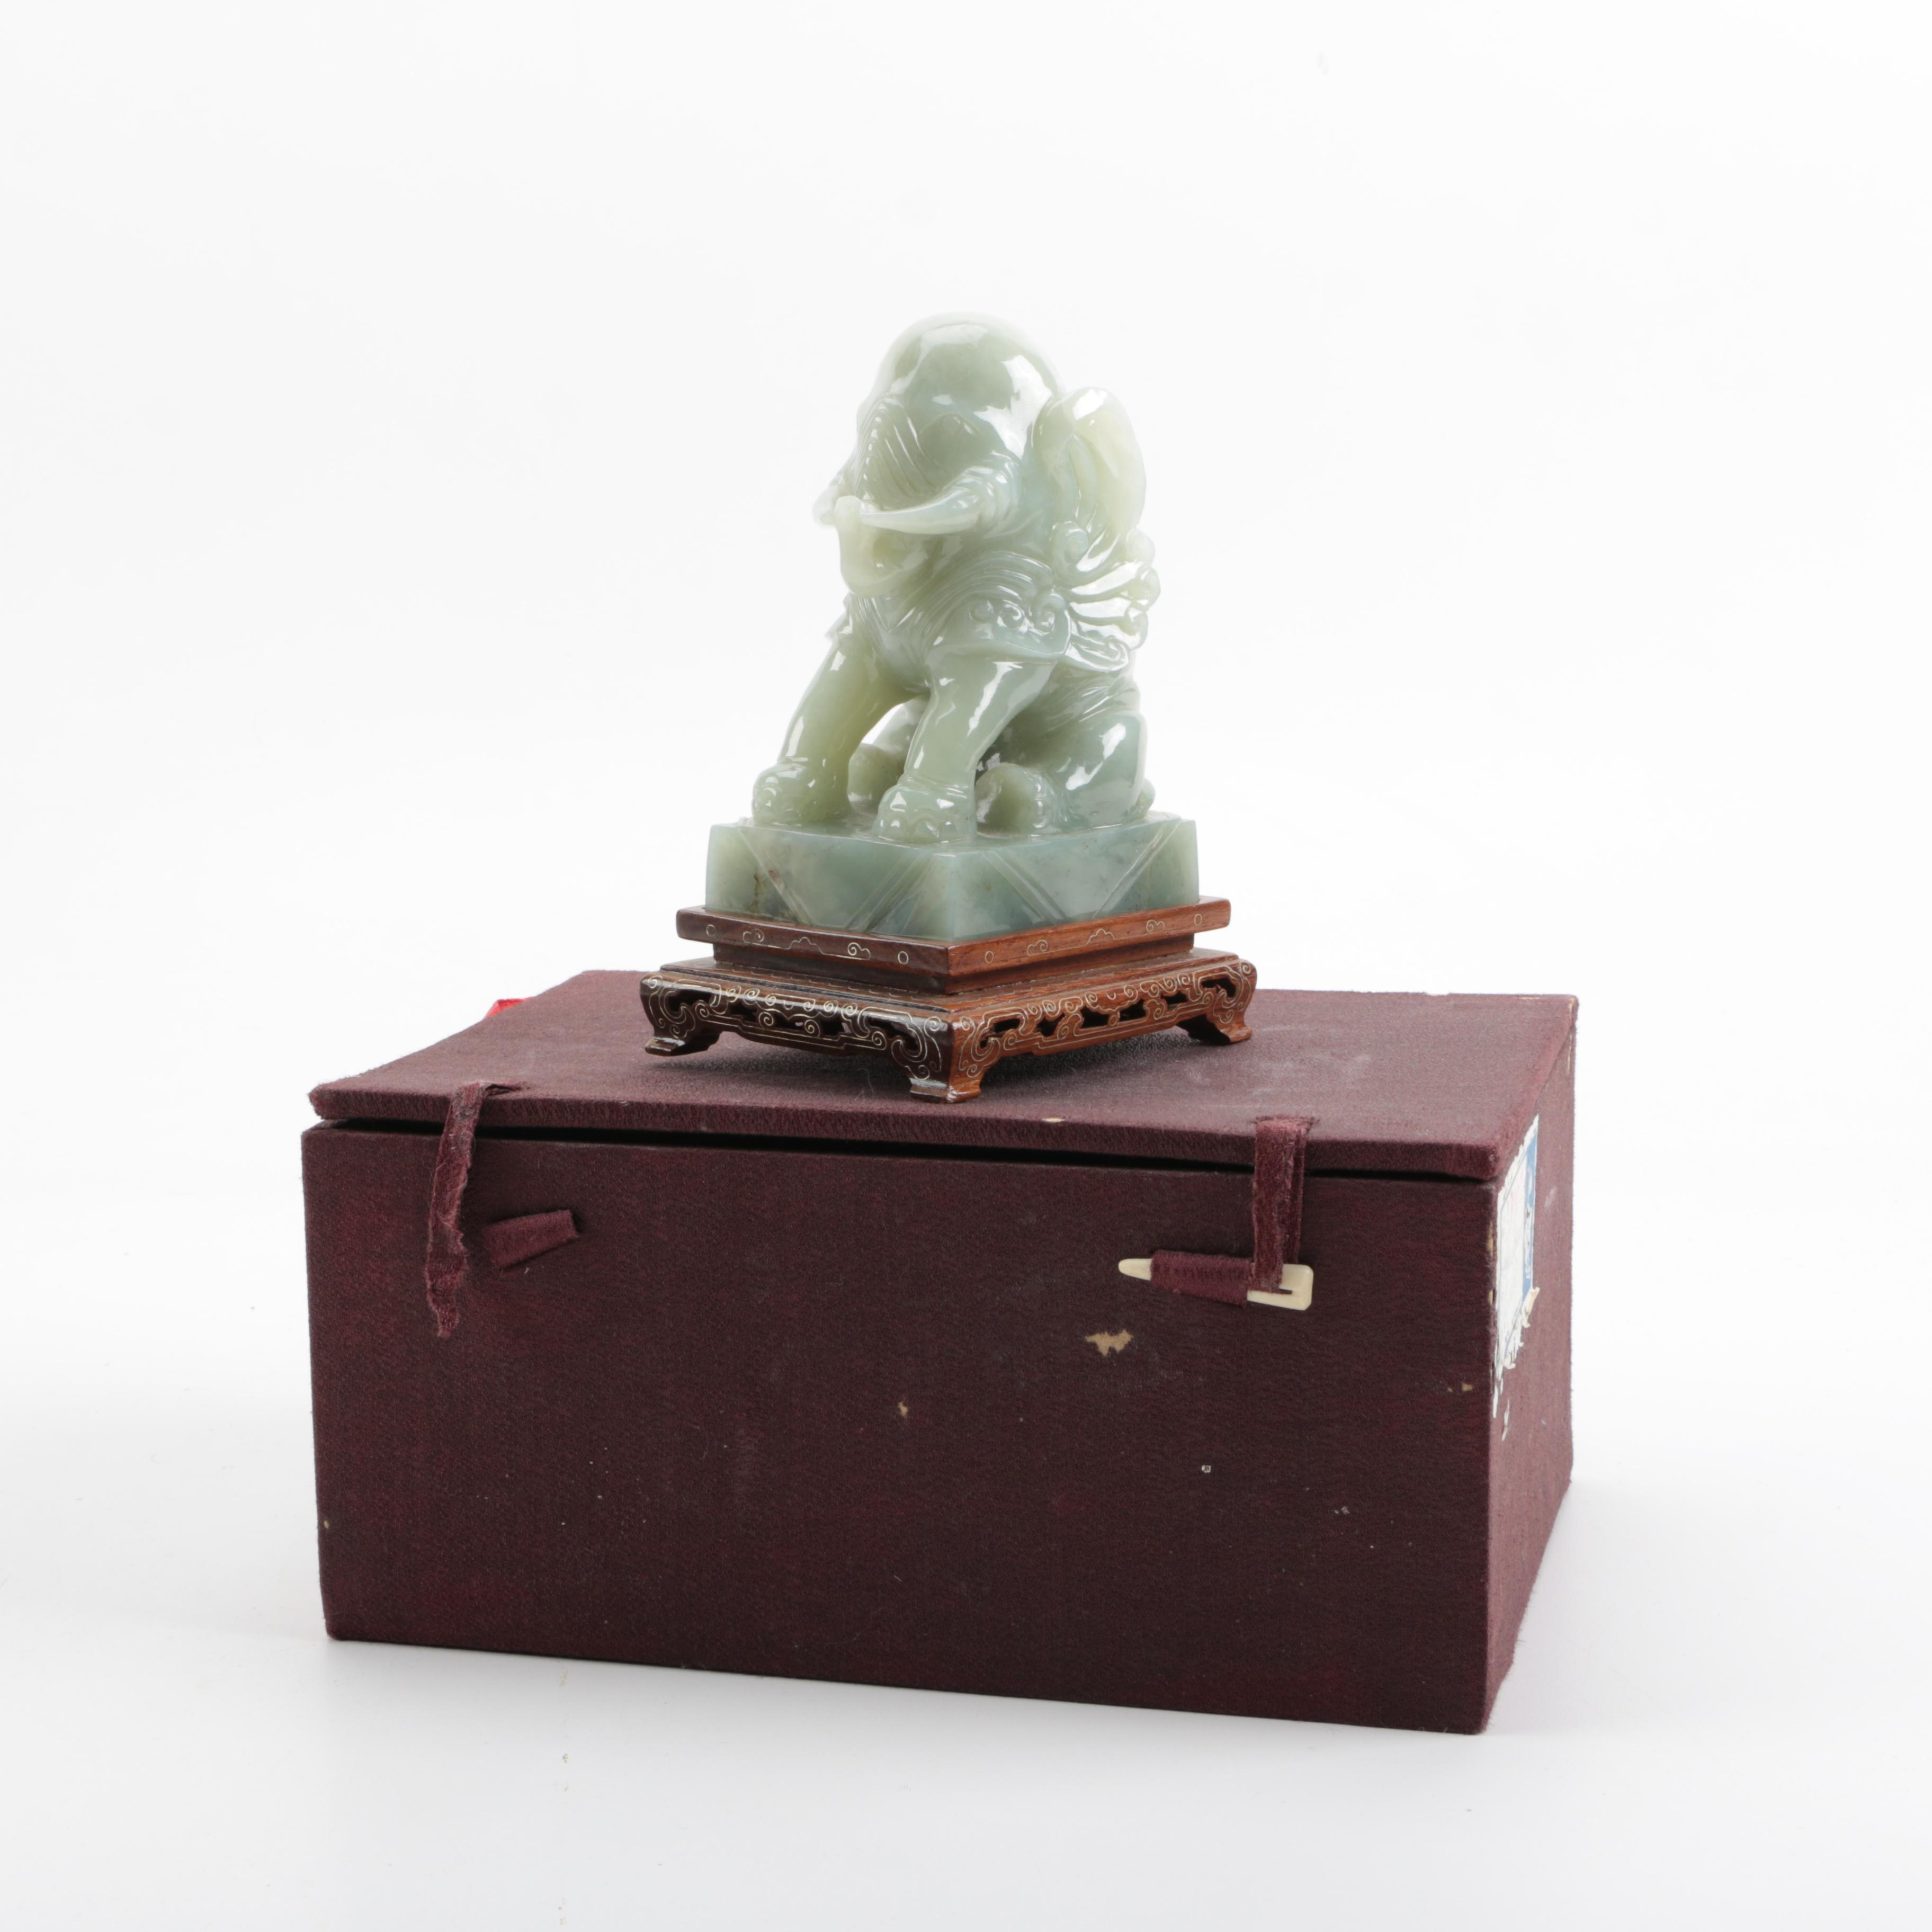 Carved Chinese Elephant Figurine With Stand and Box